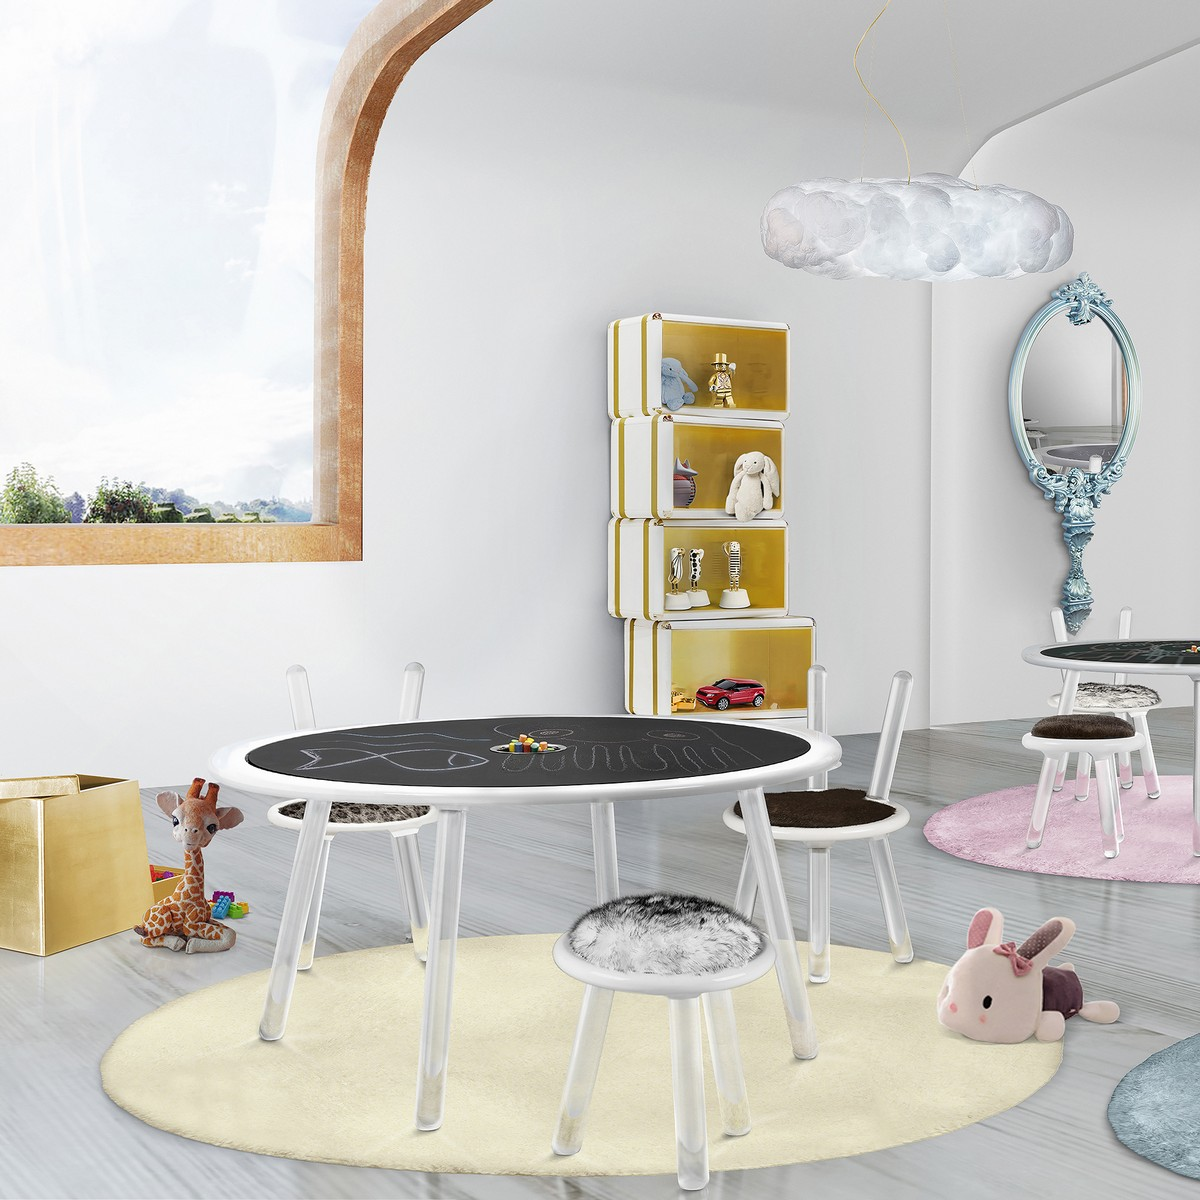 kids room, kids bedroom, luxury furniture, child's room, circu, magical furniture, magic, room decor, kids room decor, childs room decor, decor, table, design kids room The Perfect Magical Table For Your Kids Bedroom Masa Illusion neagra 100x50cm Circu 1